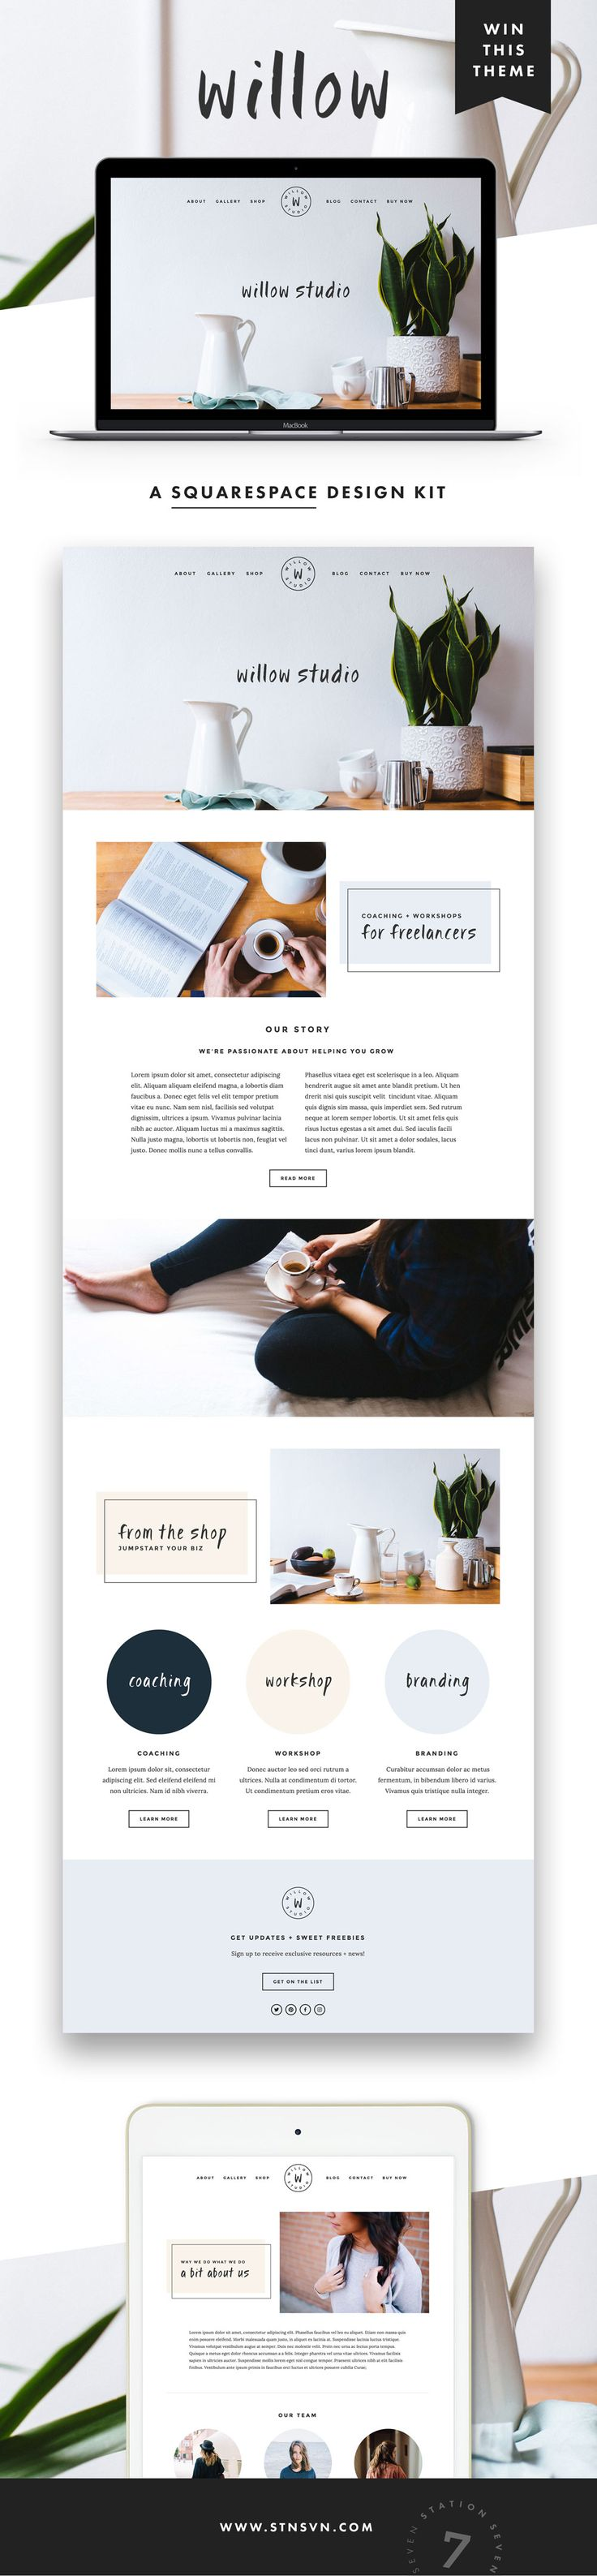 Introducing Our Latest Web Design For Squarespace Willow If Youve